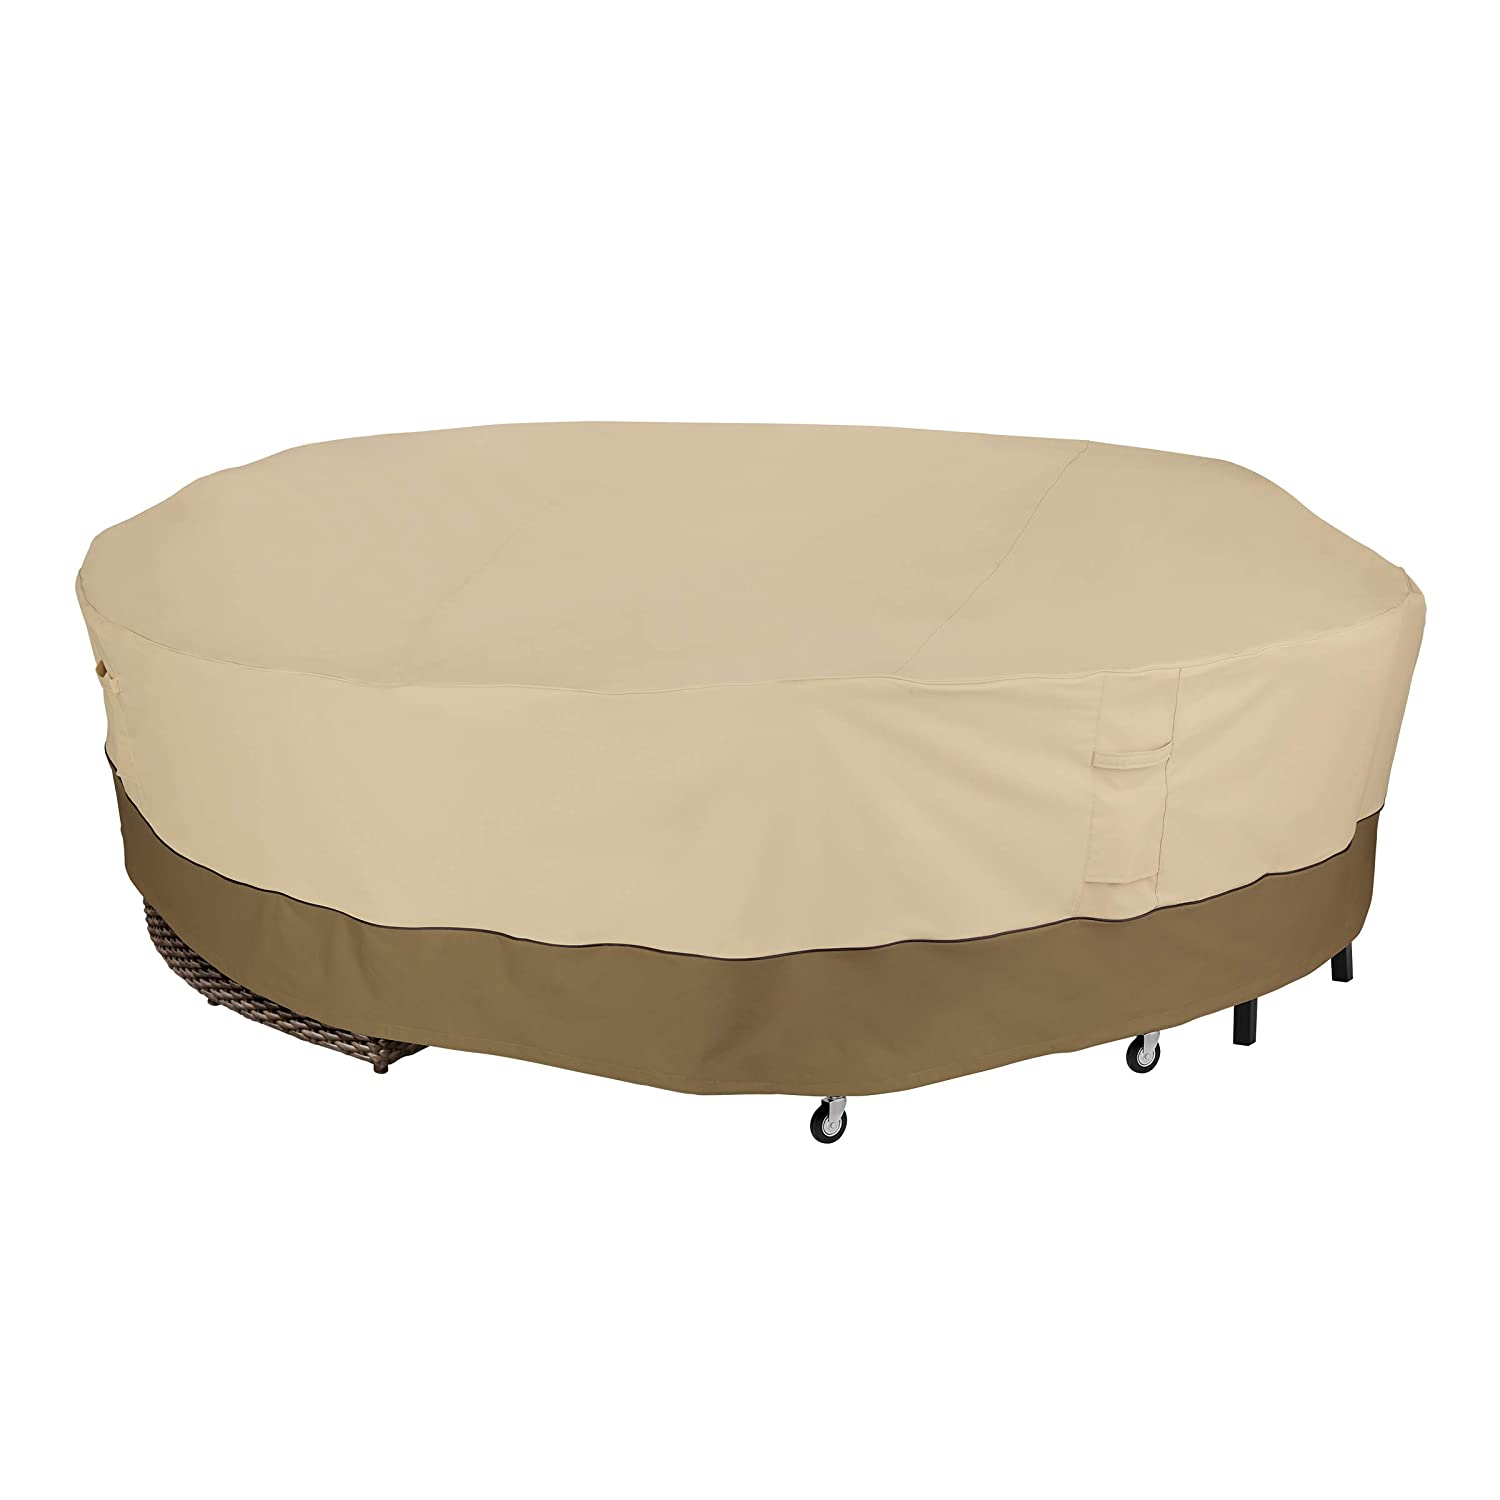 "Classic Accessories Veranda 128"" Diameter Round Sectional Sofa/General Purpose Patio Furniture Cover"